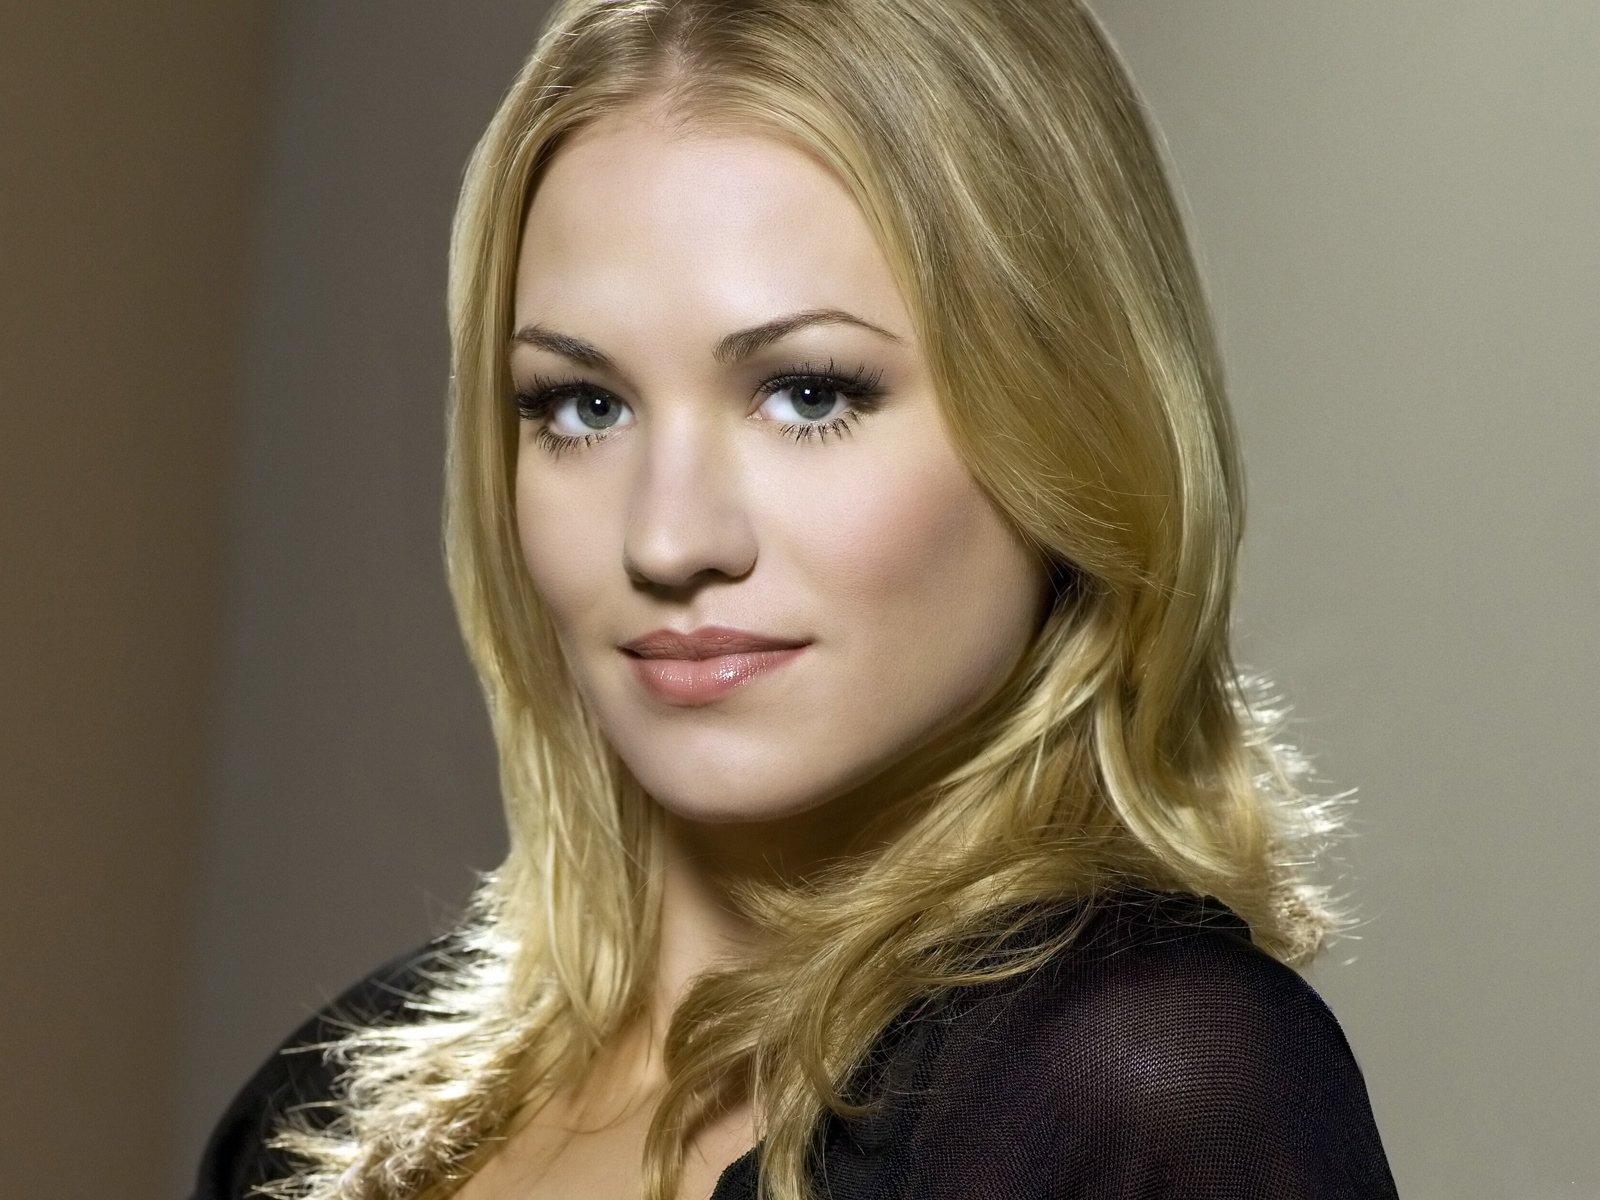 Yvonne Strahovski images Yvonne wallpaper photos 7364860 1600x1200